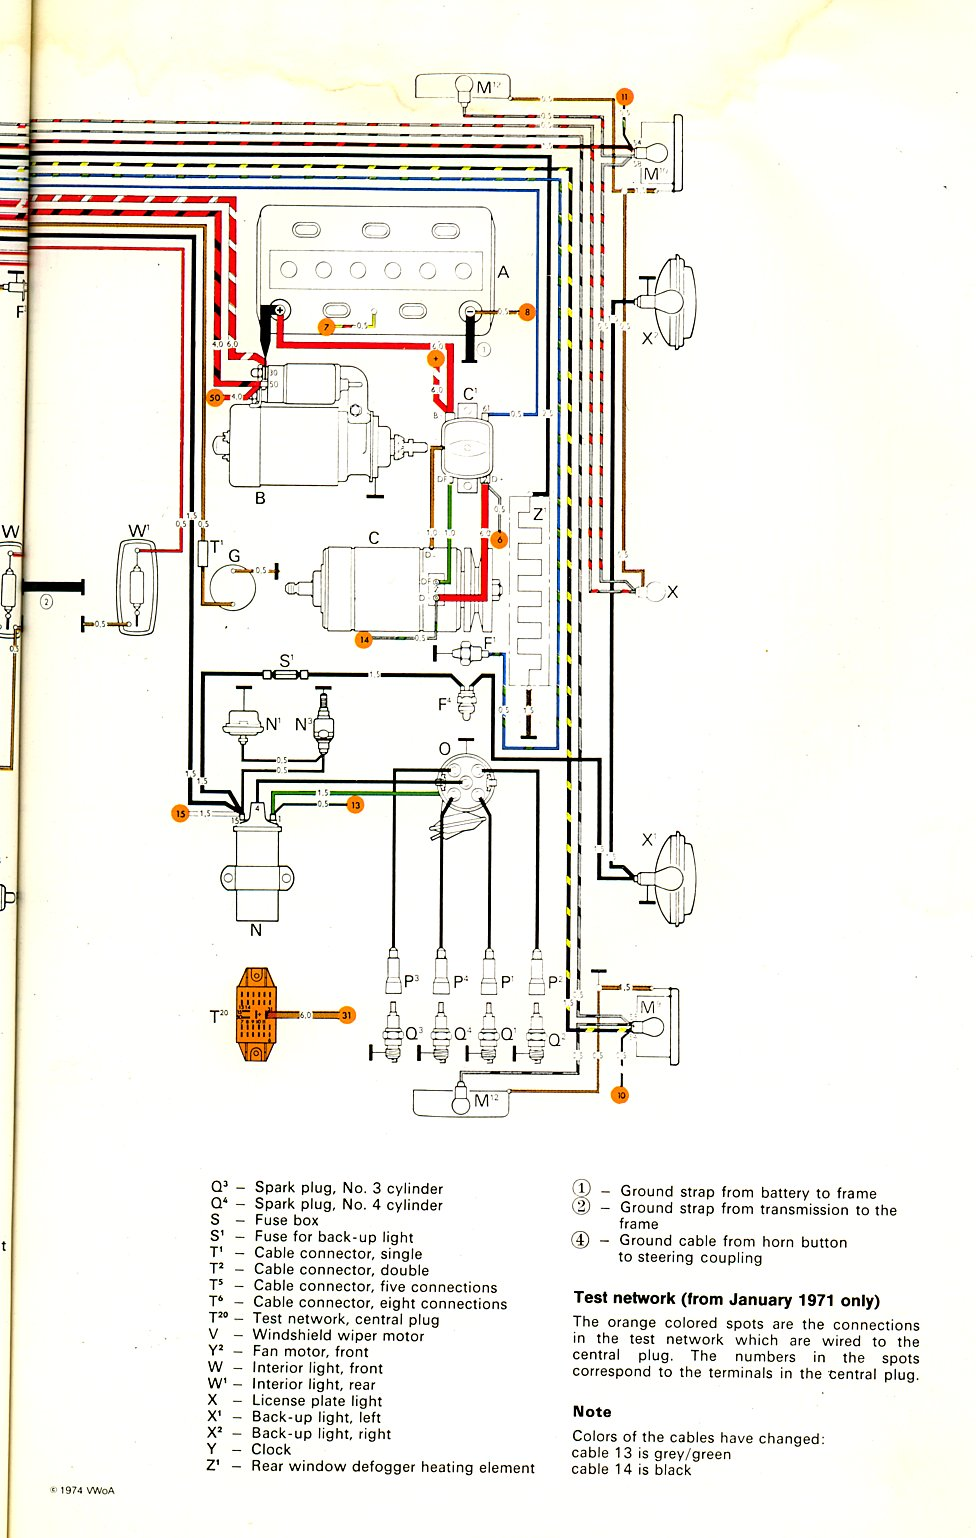 frazier built ambulance wiring diagram wiring diagrams best frazier built ambulance wiring diagram wiring library ambulance disconnect switch wiring diagram frazier built ambulance wiring diagram